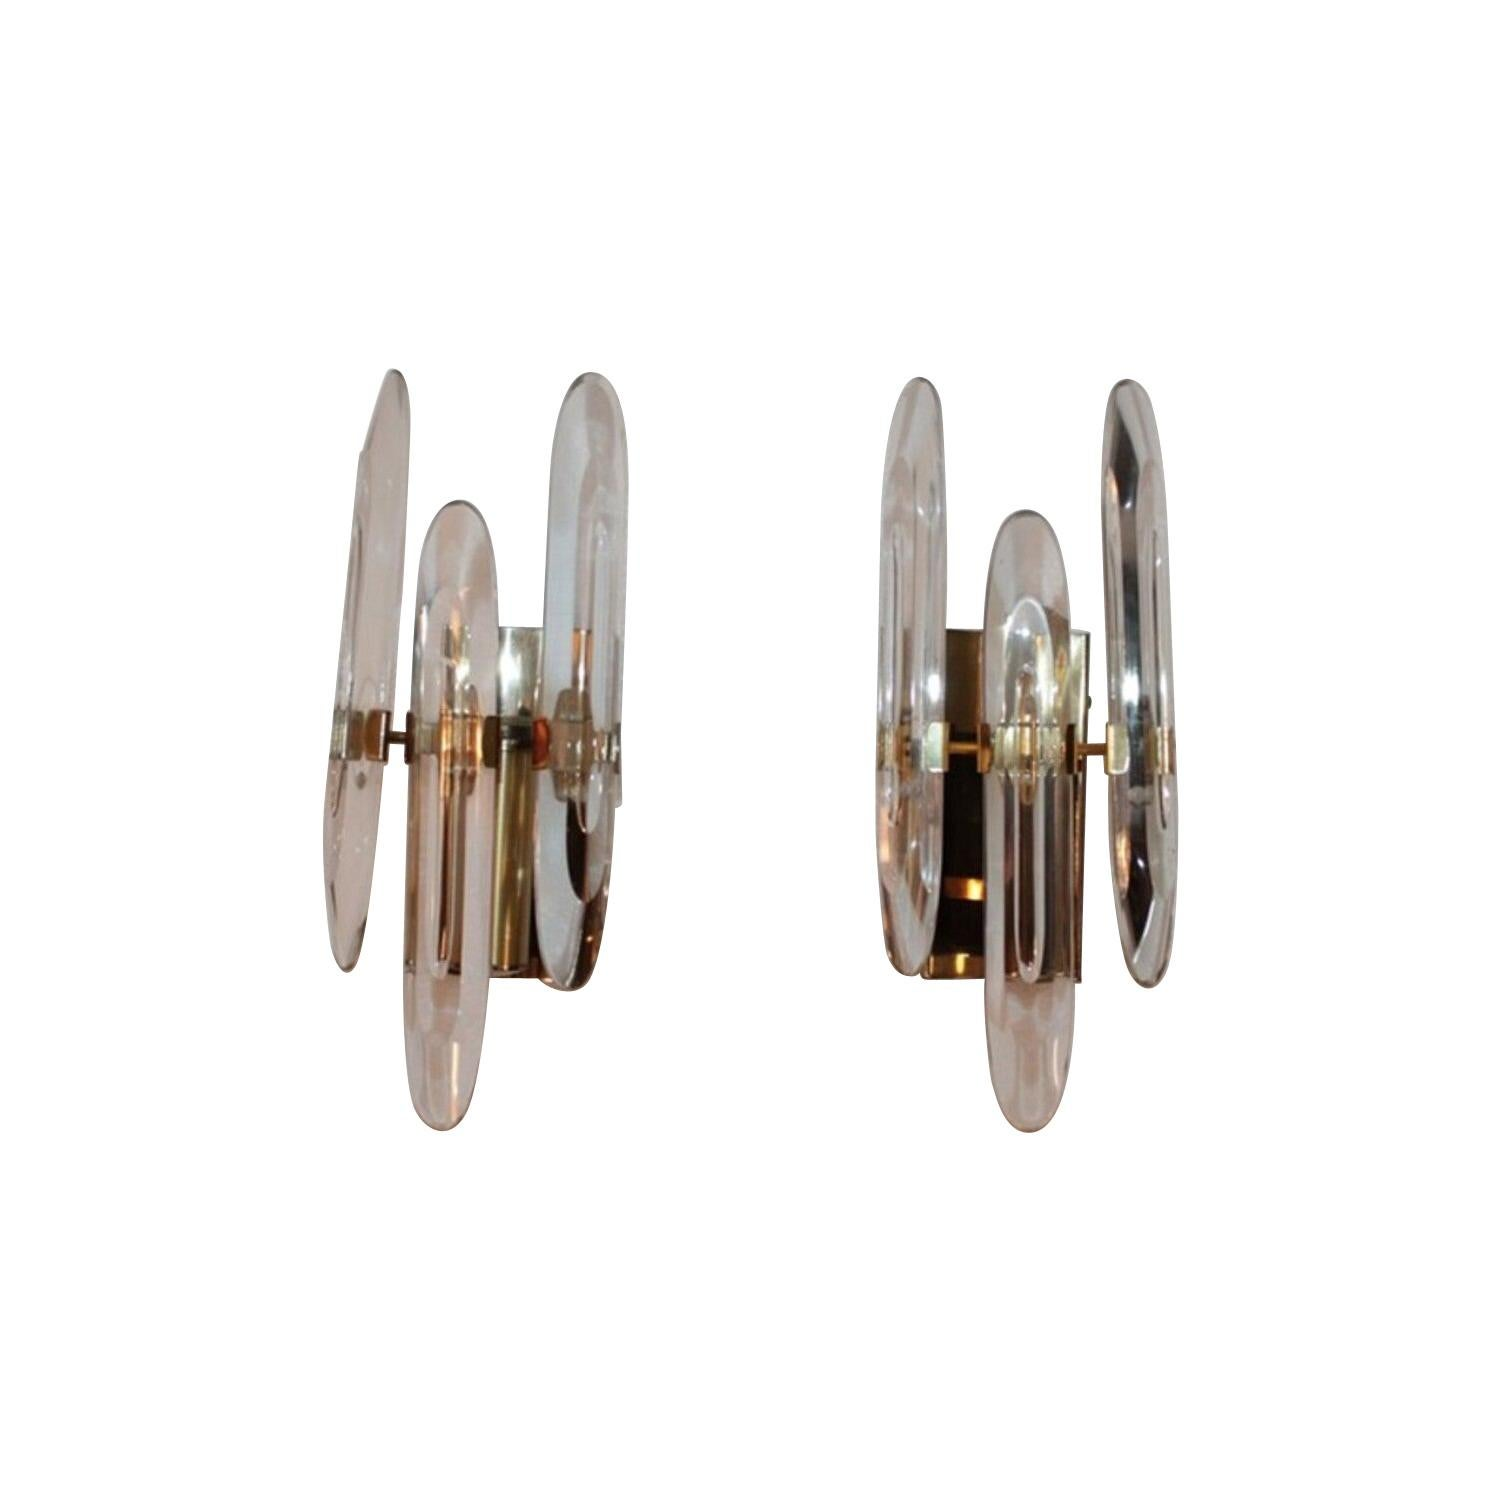 Pair of Sconces 1970s Brass and Glass by Sciolari